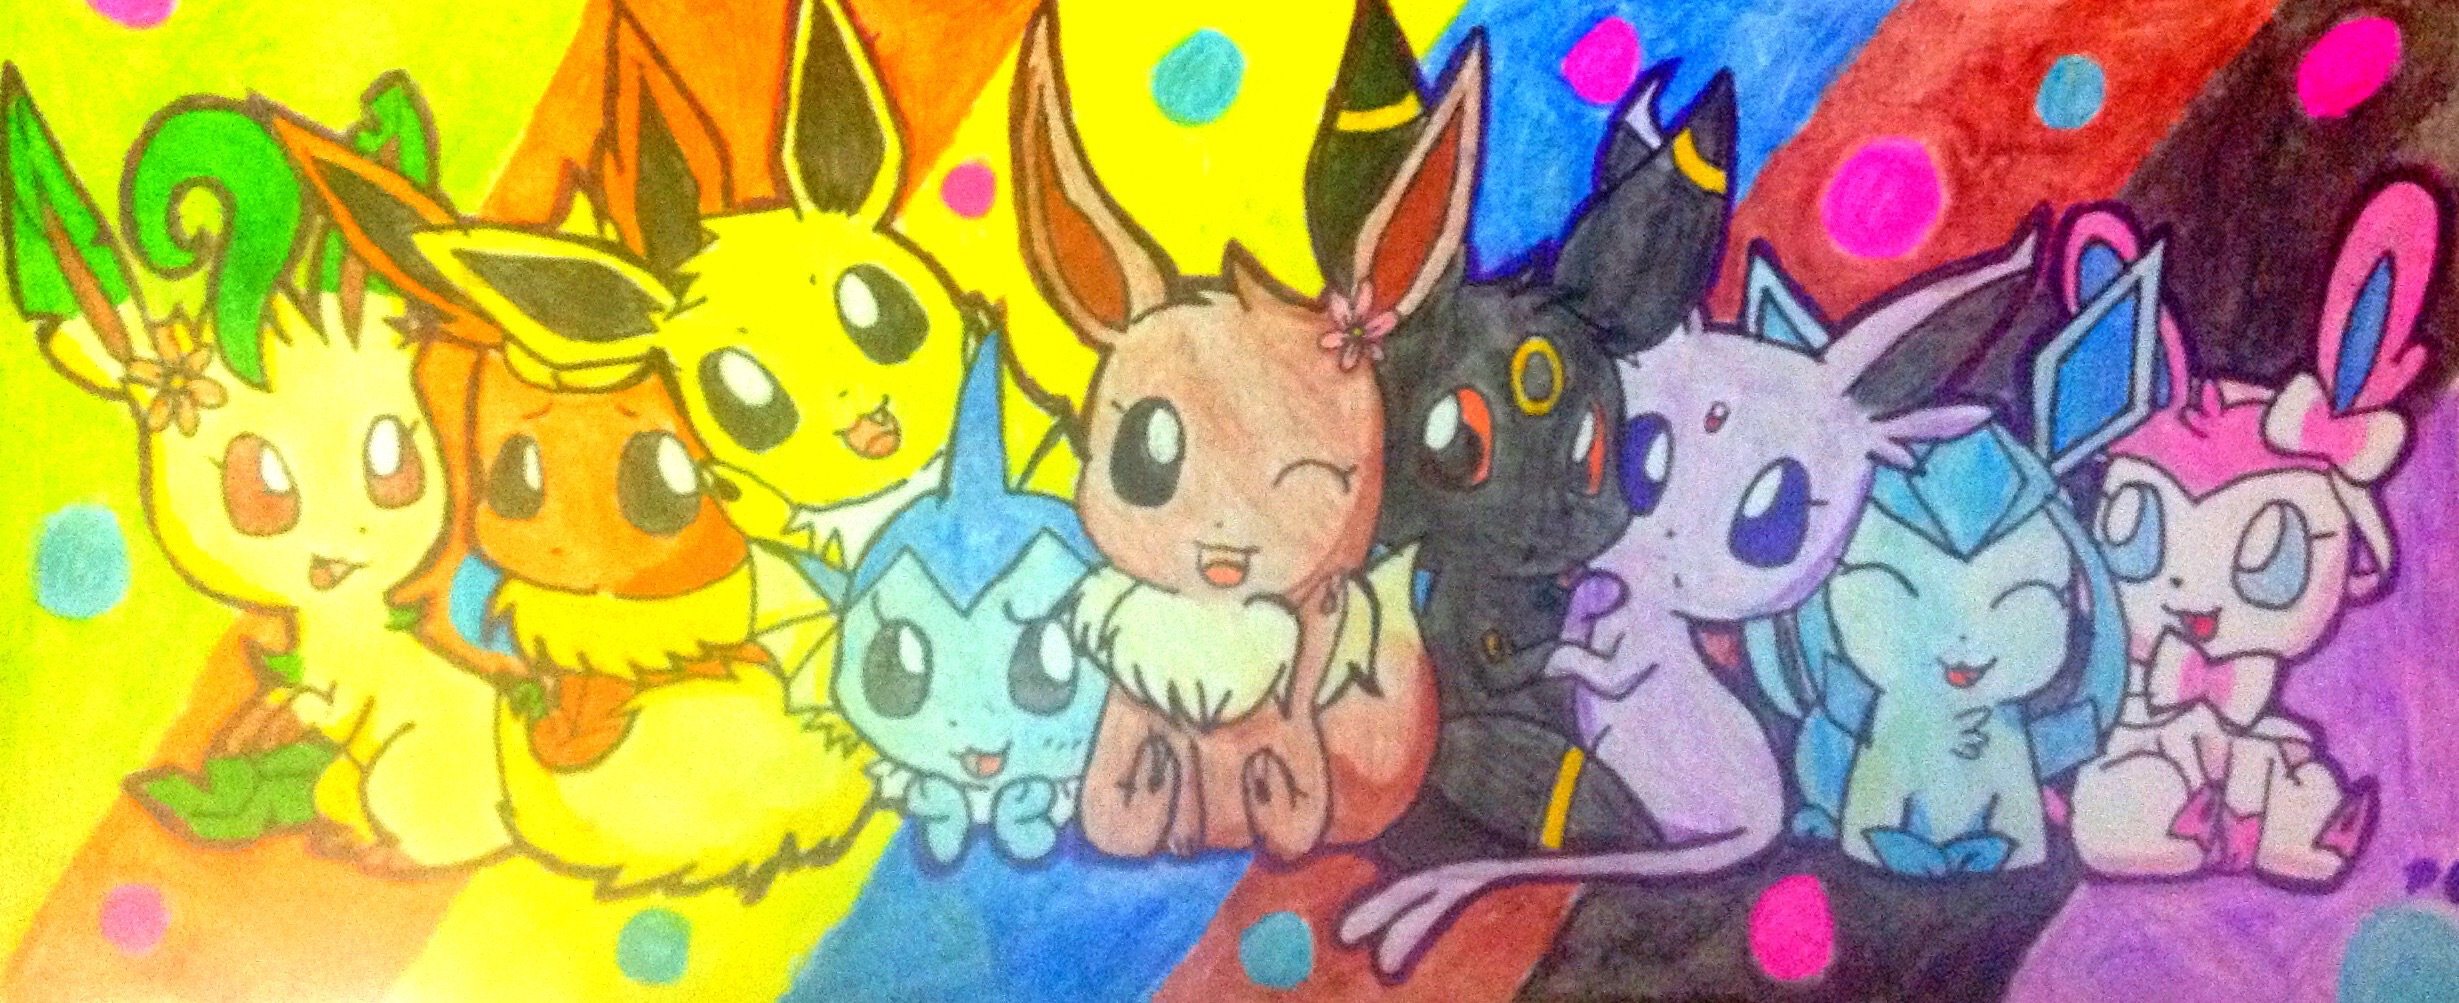 Dessin Kawaii Facile Pokemon Evoli Dessin De Manga